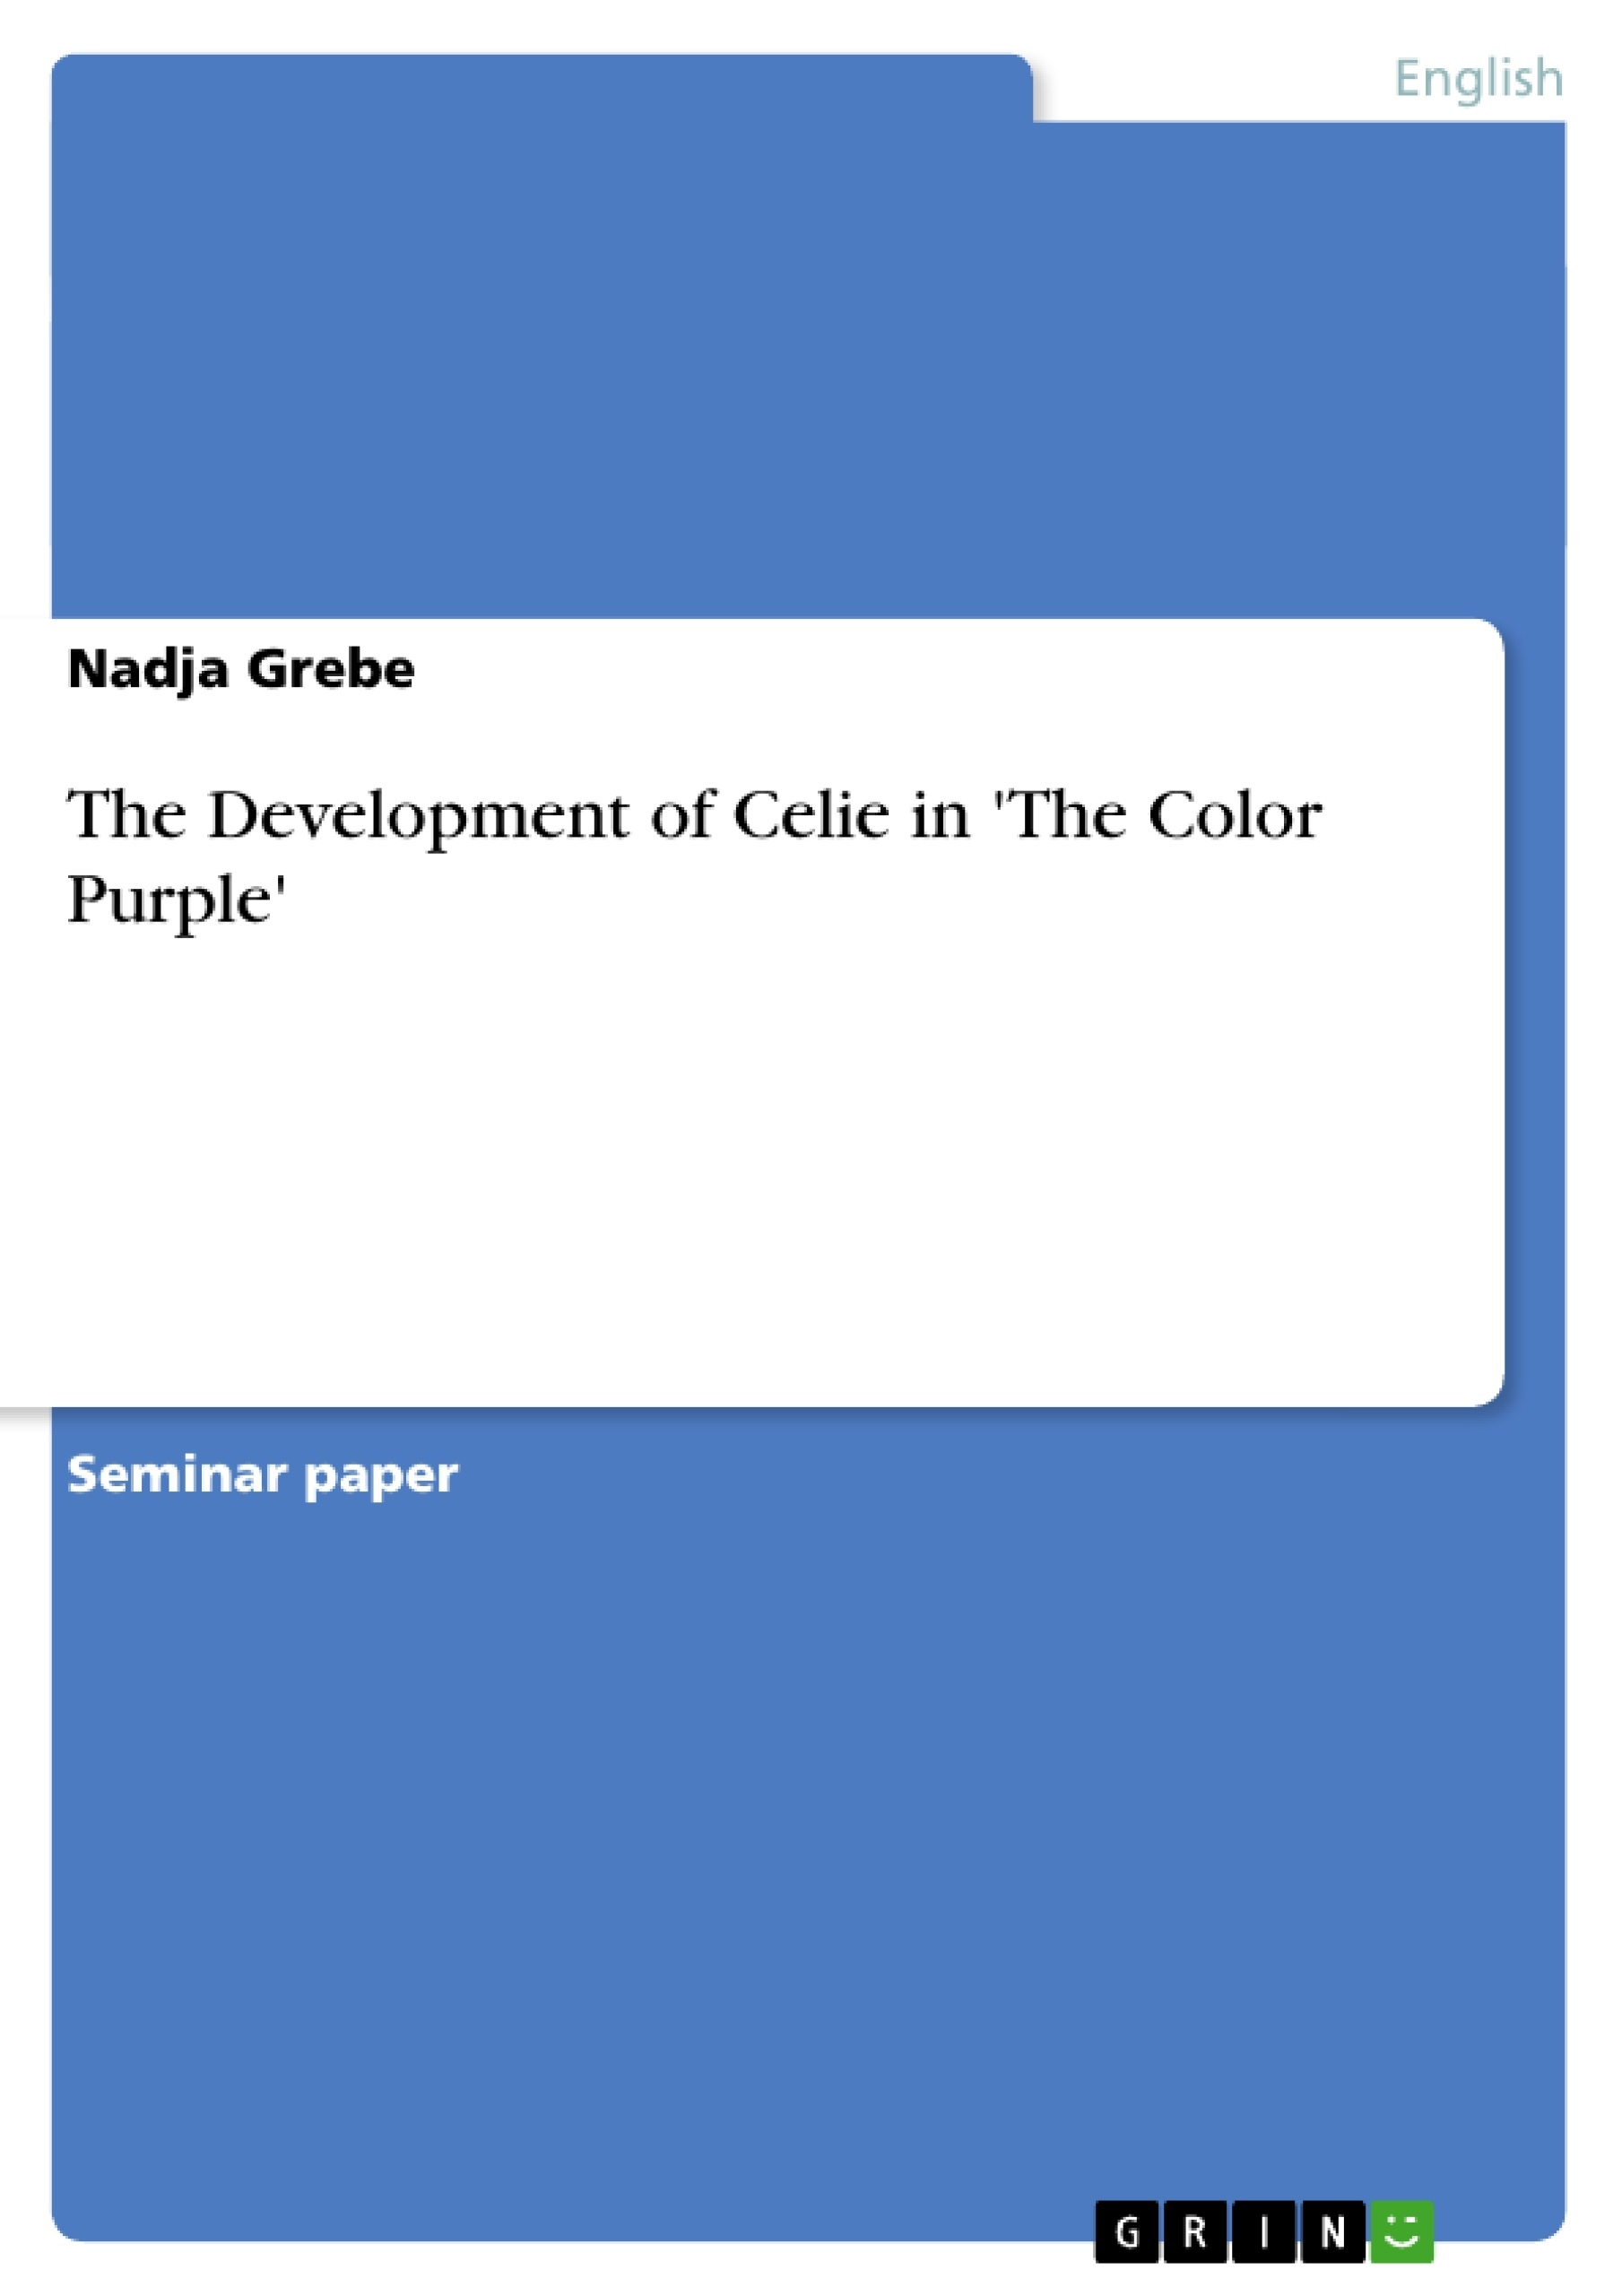 the development of celie in the color purple publish your the development of celie in the color purple publish your master s thesis bachelor s thesis essay or term paper